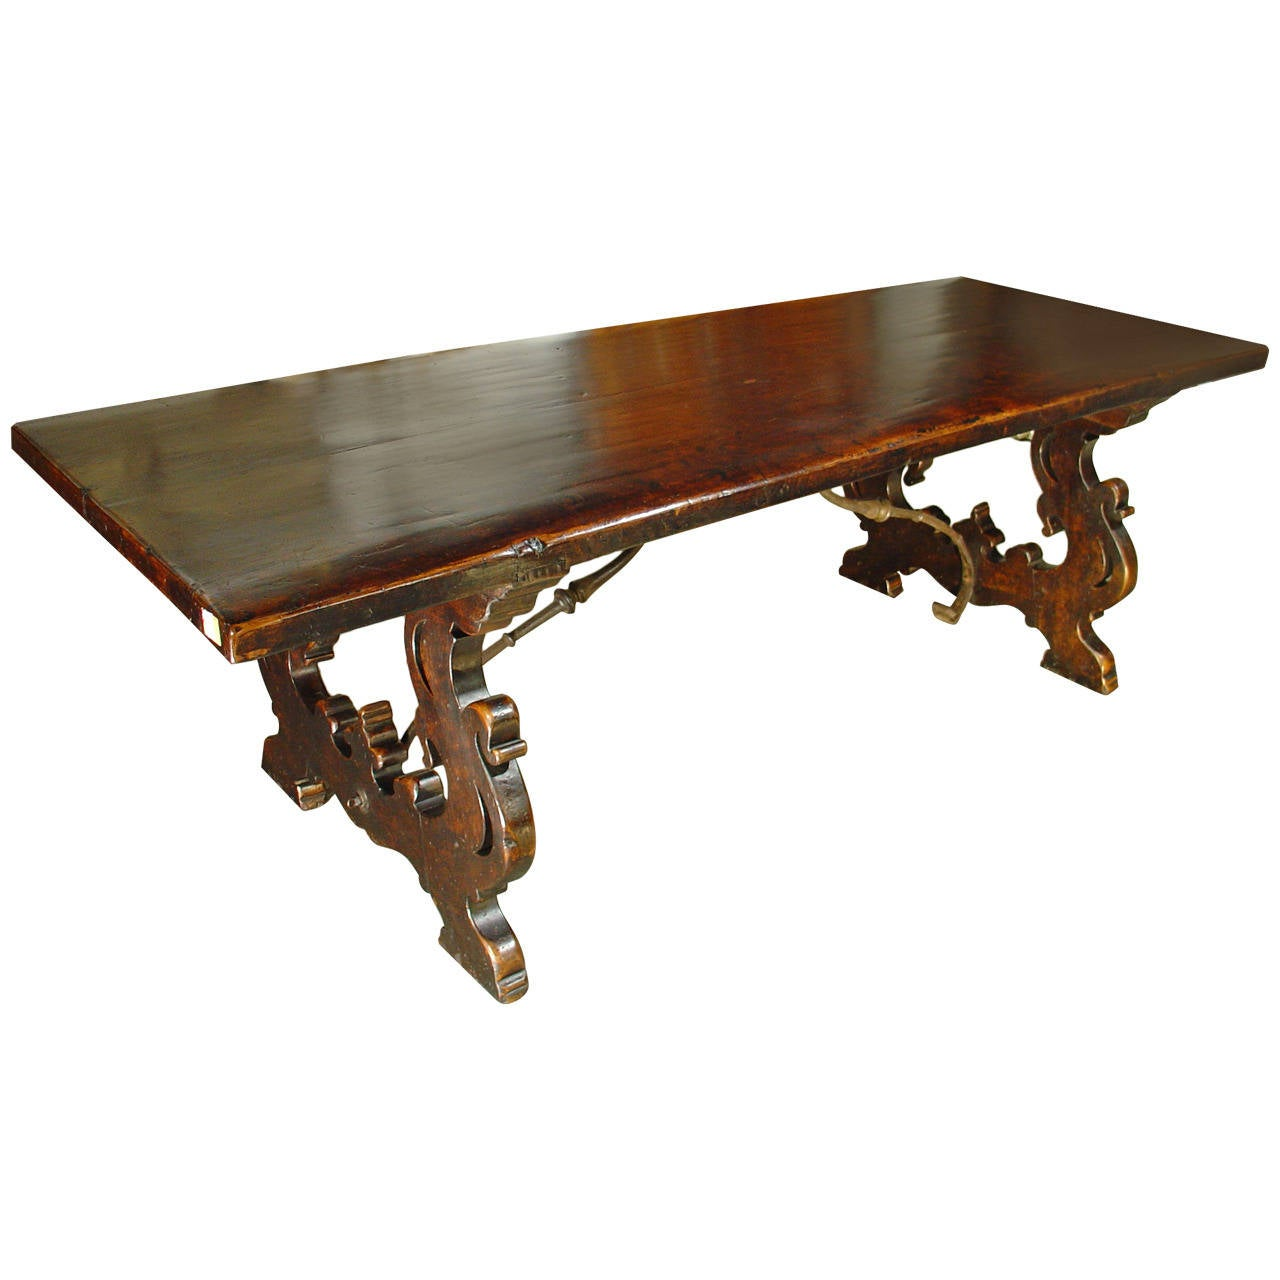 Antique Tuscan Walnut Wood Dining Table at 1stdibs : 1410282l from www.1stdibs.com size 1280 x 1280 jpeg 79kB